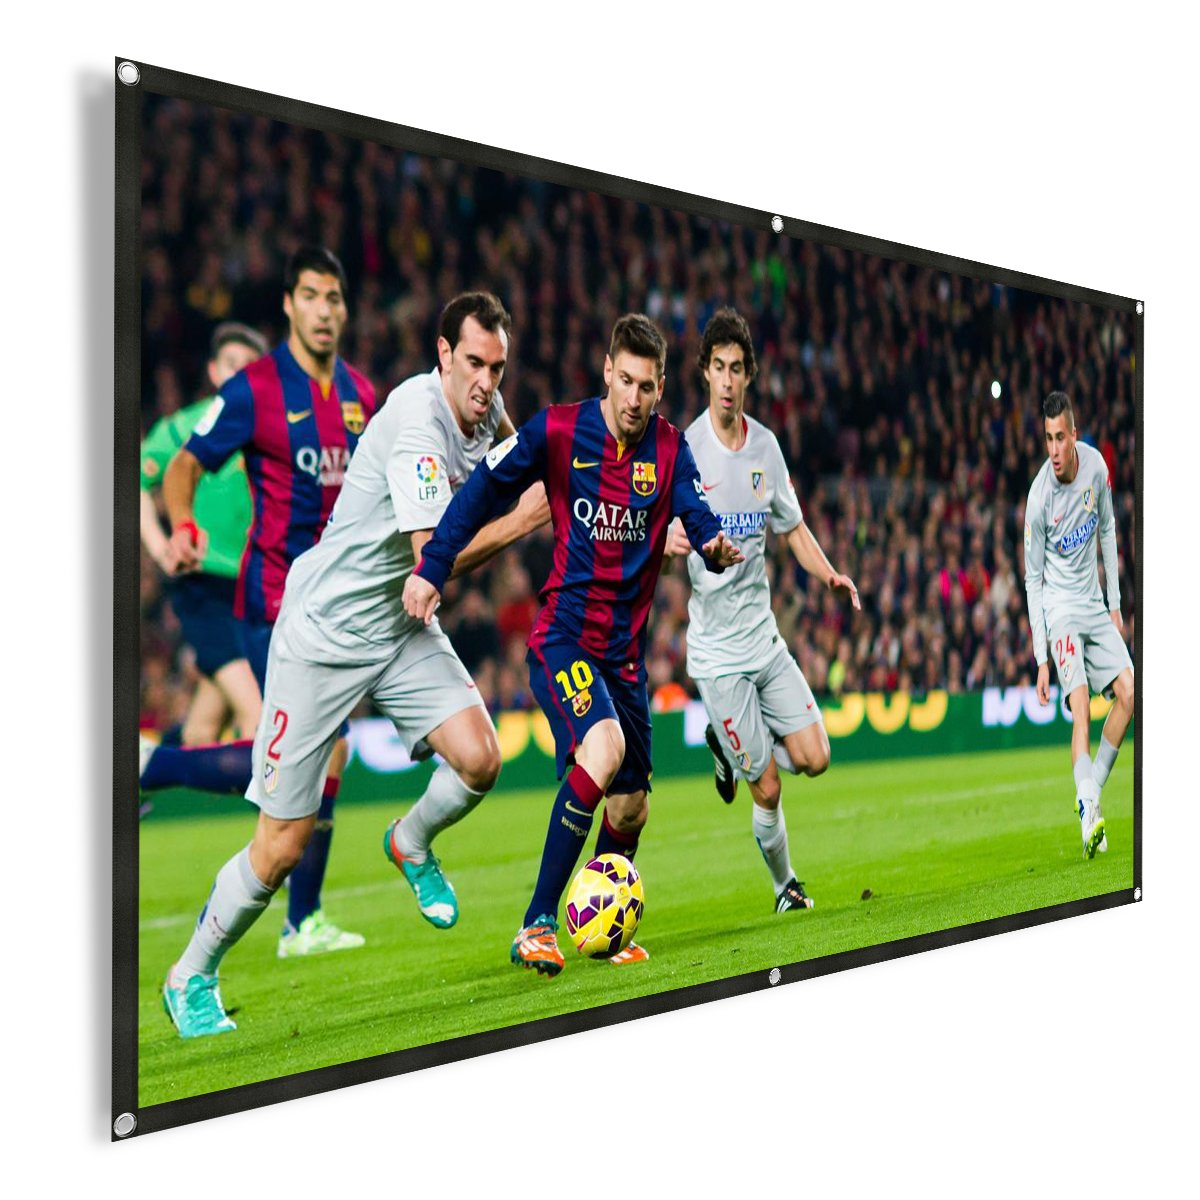 REIDEA Outdoor Portable Projector Screen 120 Inch 16:9 HD Foldable Movie Screen Support Double Sided Projection